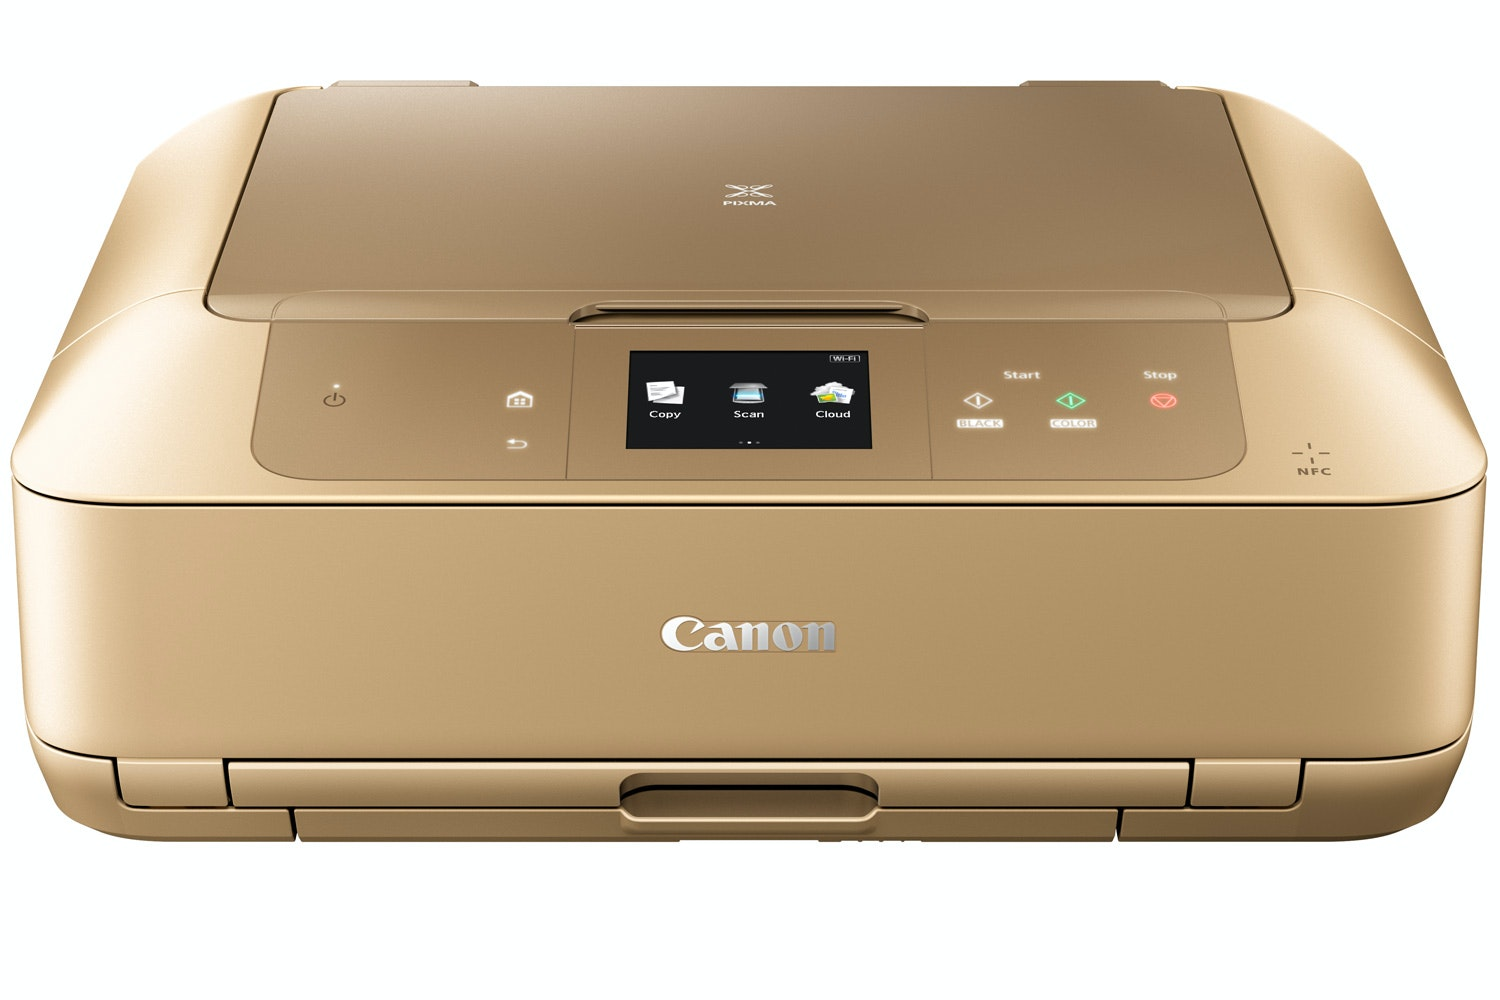 Canon Multifunction Printer | MG7753 Gold